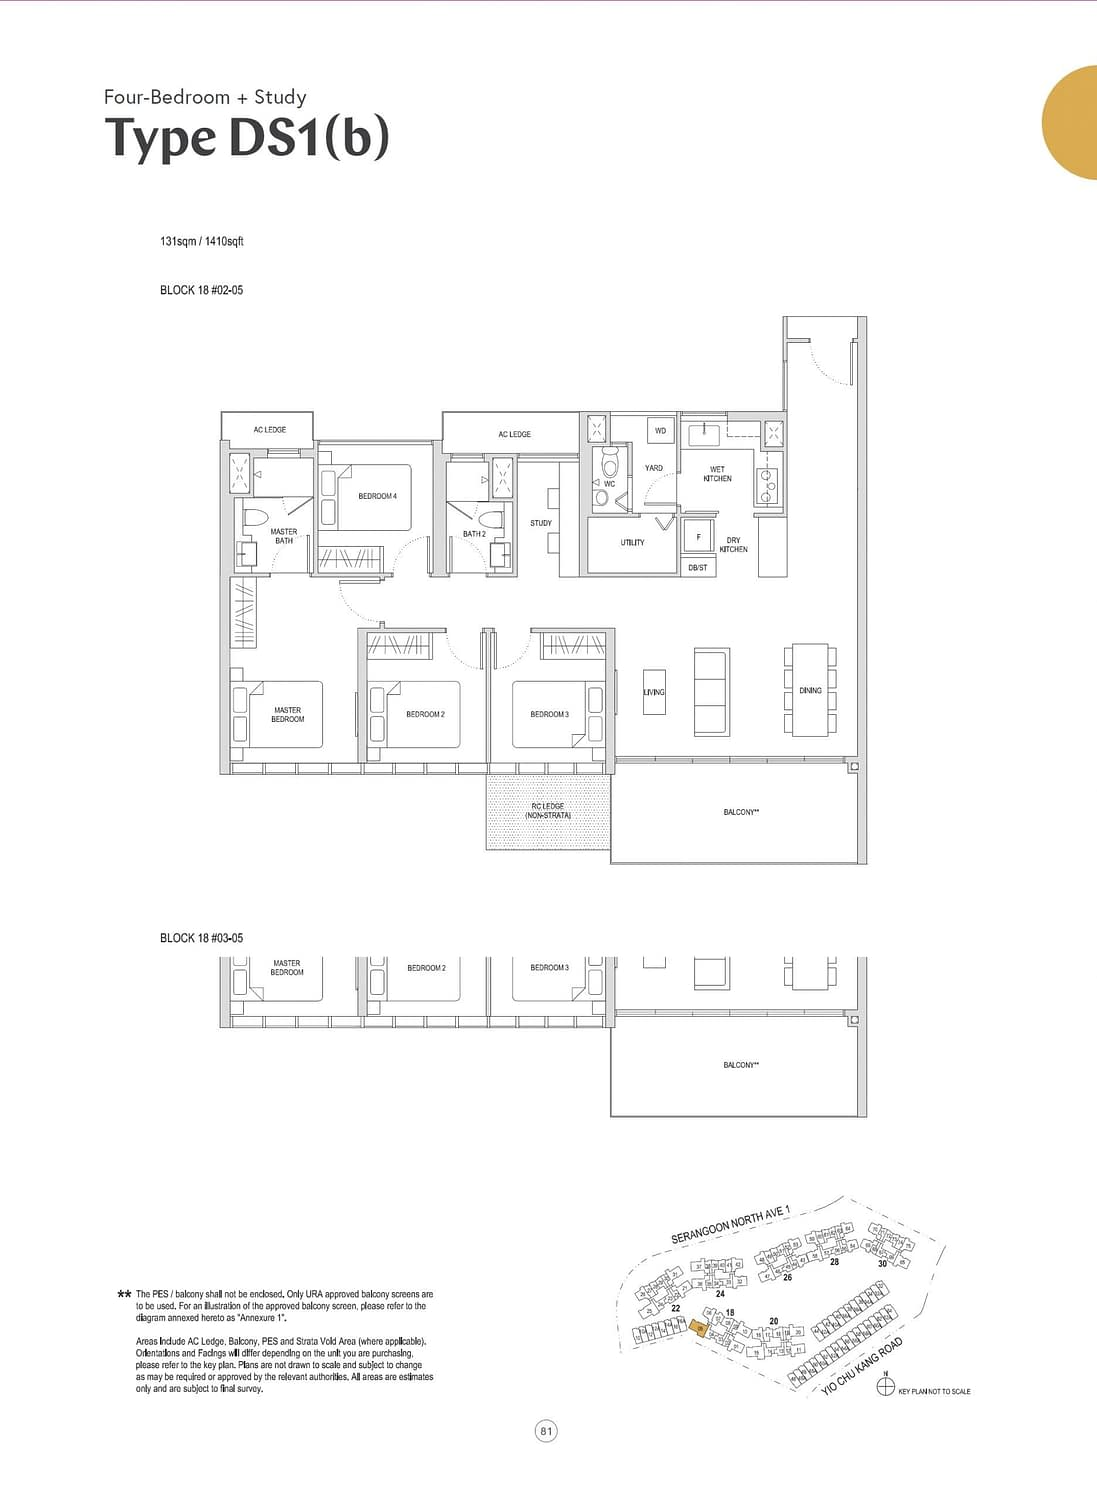 Affinity at Serangoon Affinity at Serangoon floorplan DS1b scaled